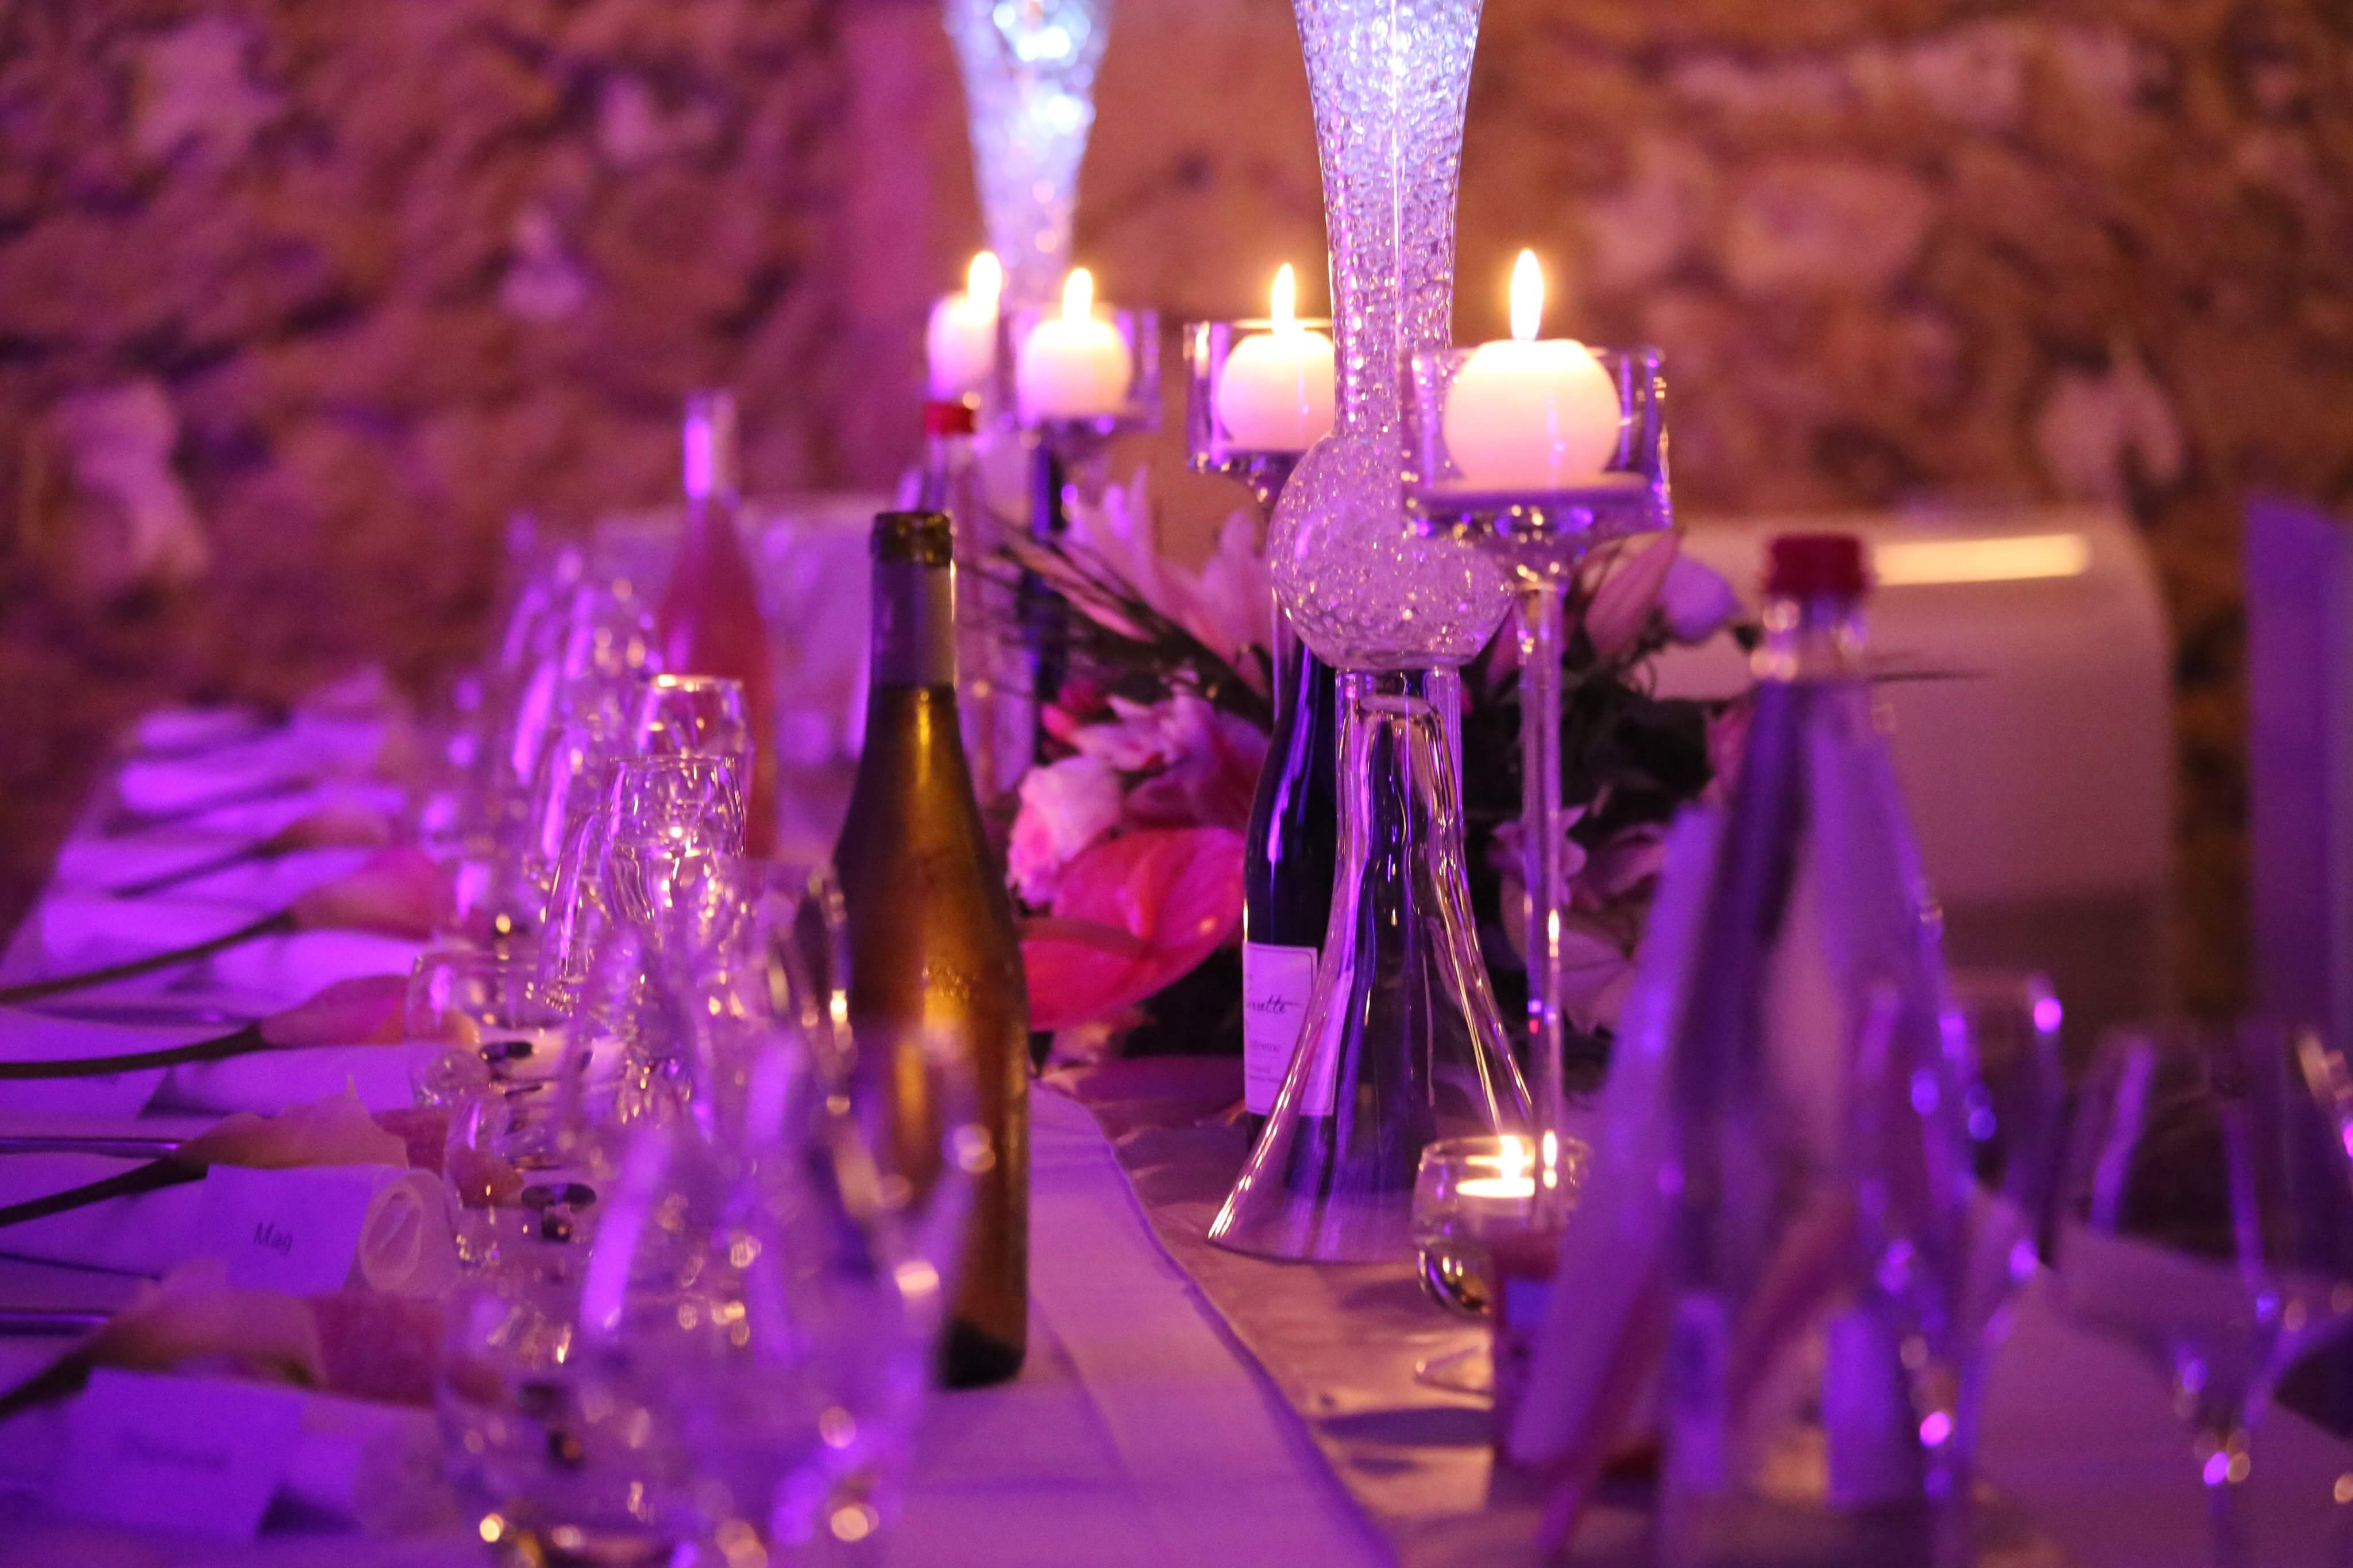 Decoration mariage nîmes moderne glamour chic